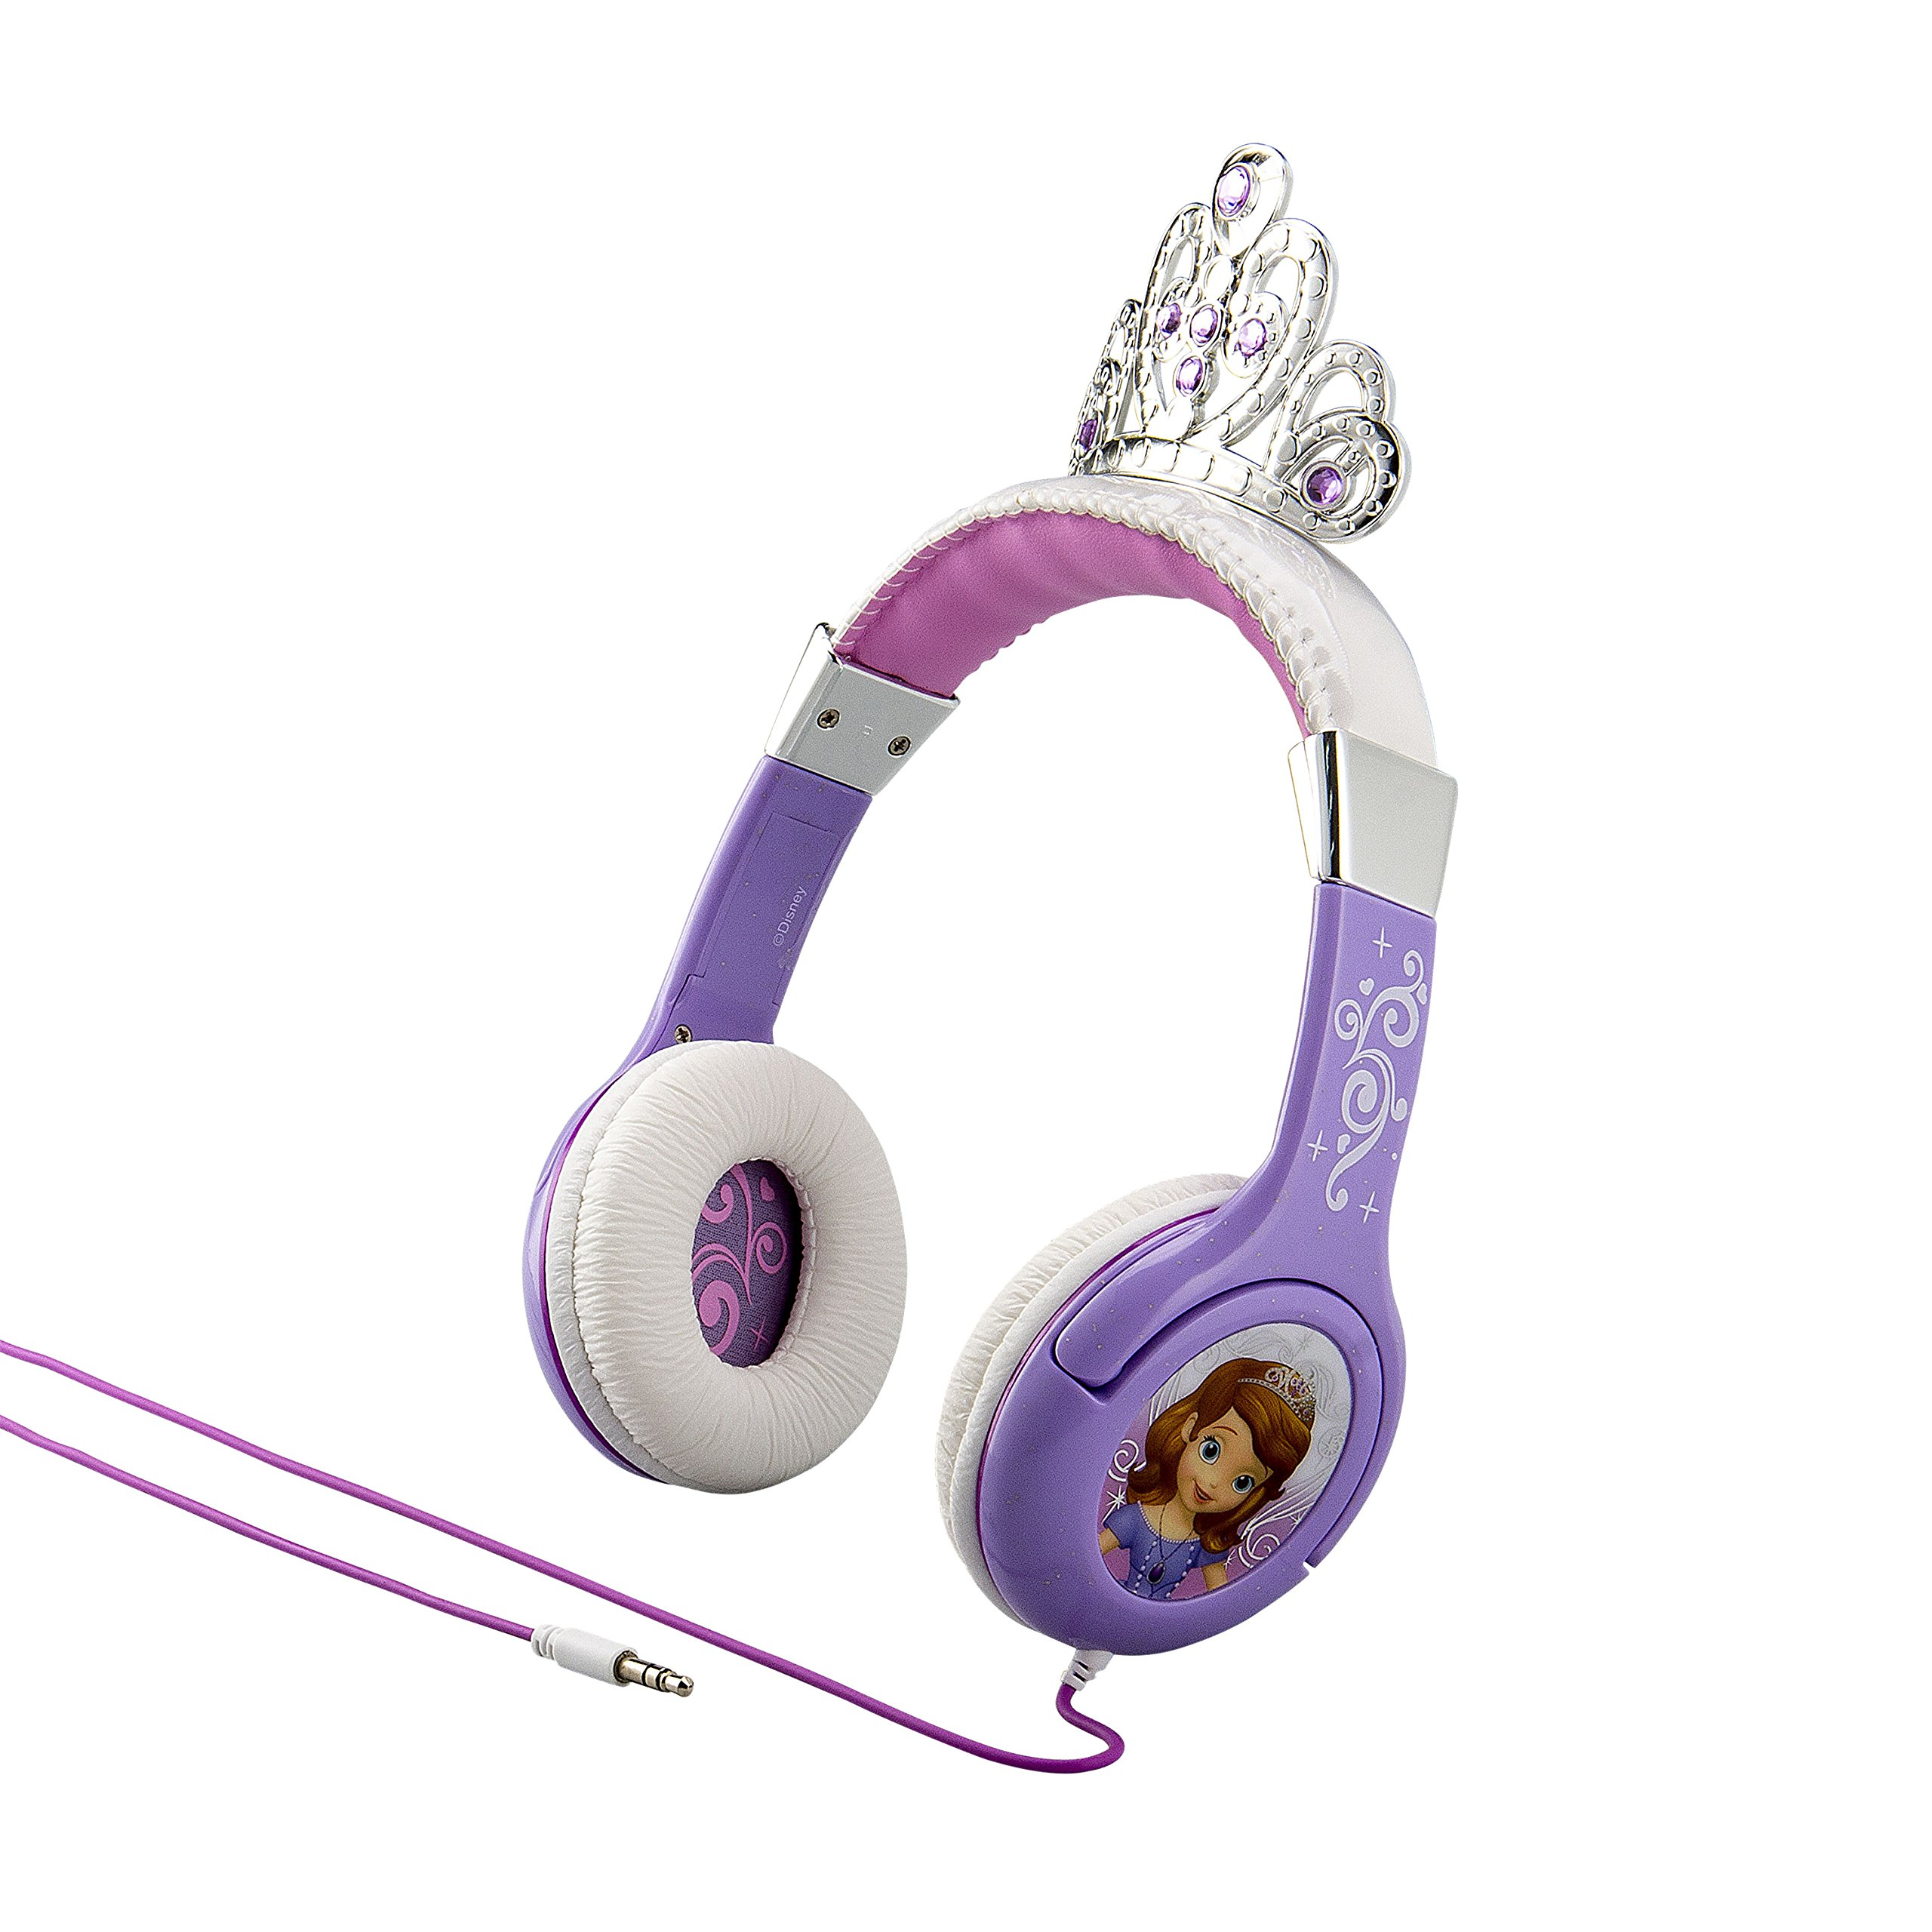 KIDdesigns Sofia The First Kid Friendly Princess Headphones with Built in Volume Limiting Feature for Safe Listening by KIDdesigns